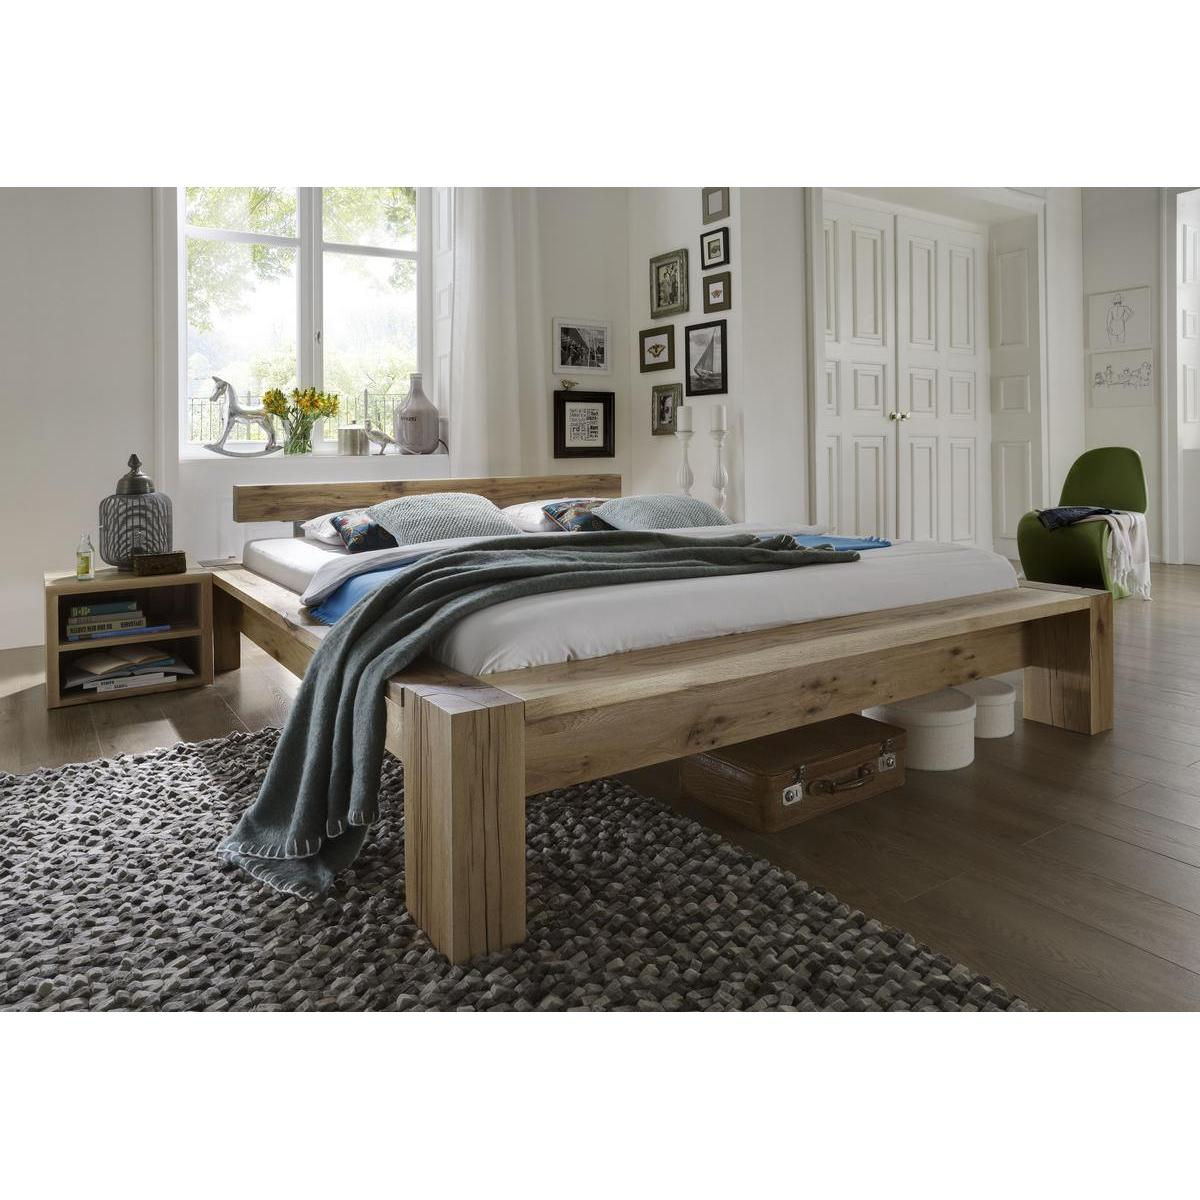 echtholz balkenbett 140x200 heavy sleep capri wildeiche. Black Bedroom Furniture Sets. Home Design Ideas